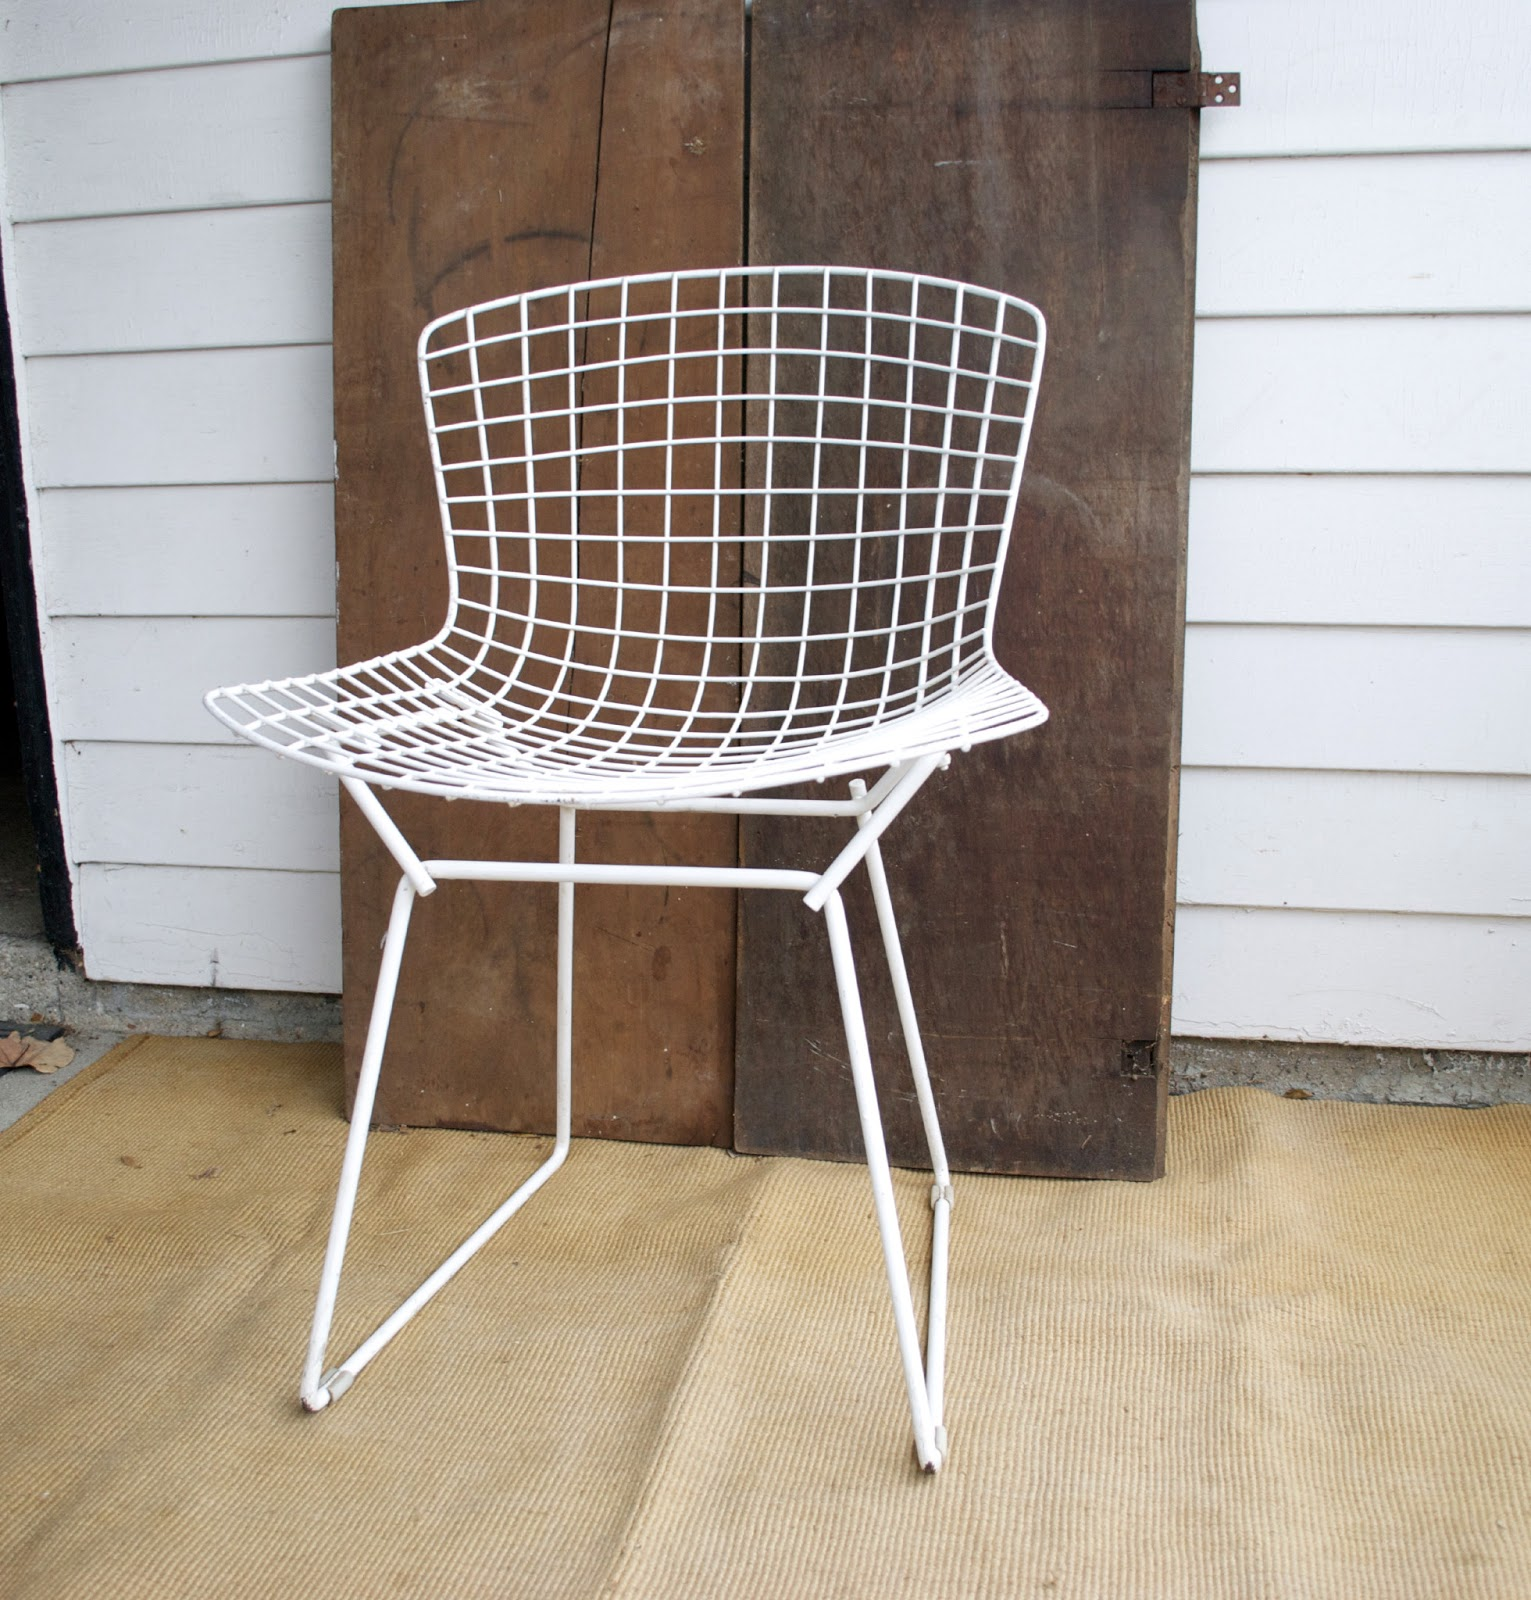 Bertoia Side Chair | Our Designs - Vintage White Knoll Bertoia Side Chair - Vintage White Knoll Bertoia Side  Chair Anestamoby